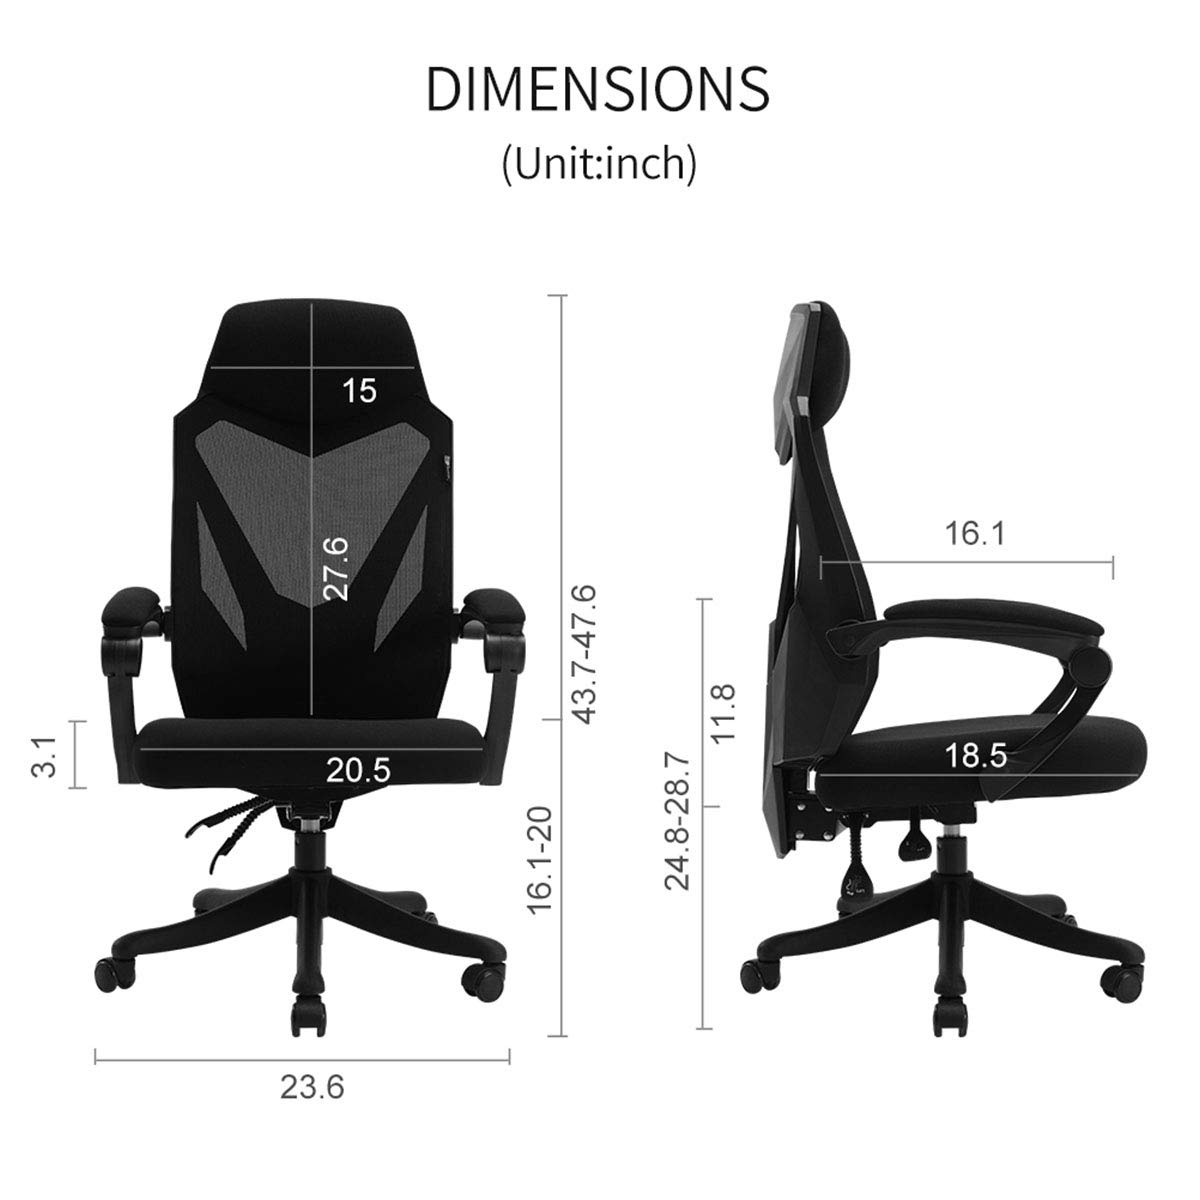 Hbada Office Computer Desk Chair - Ergonomic High-Back Swivel Task Gaming Chair - White by Hbada (Image #7)